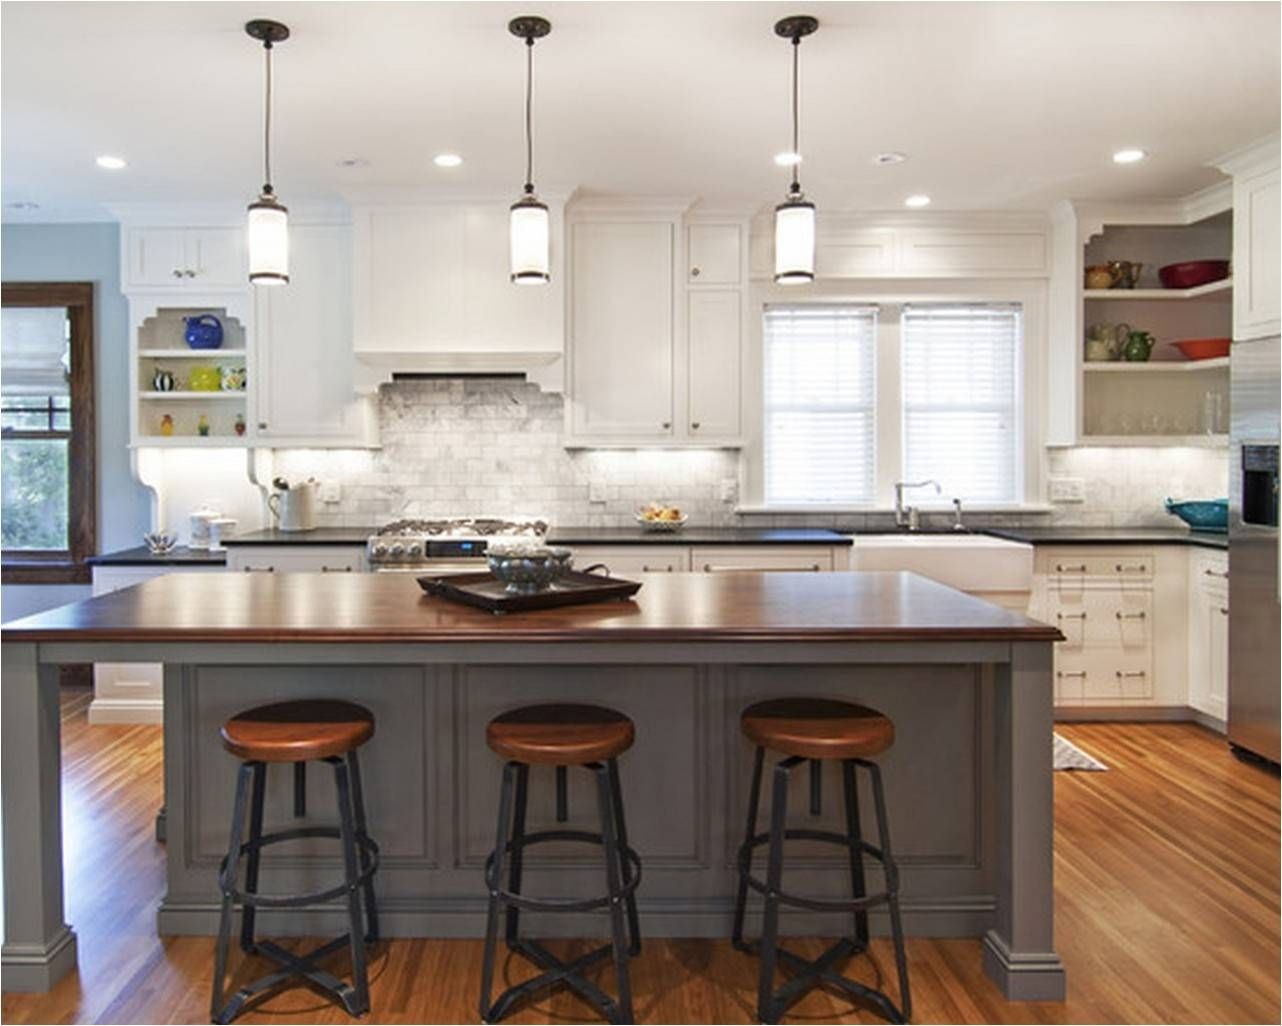 Fancy Rustic Pendant Lighting Kitchen 47 For Double Pendant Light for Double Pendant Lights For Kitchen (Image 4 of 15)